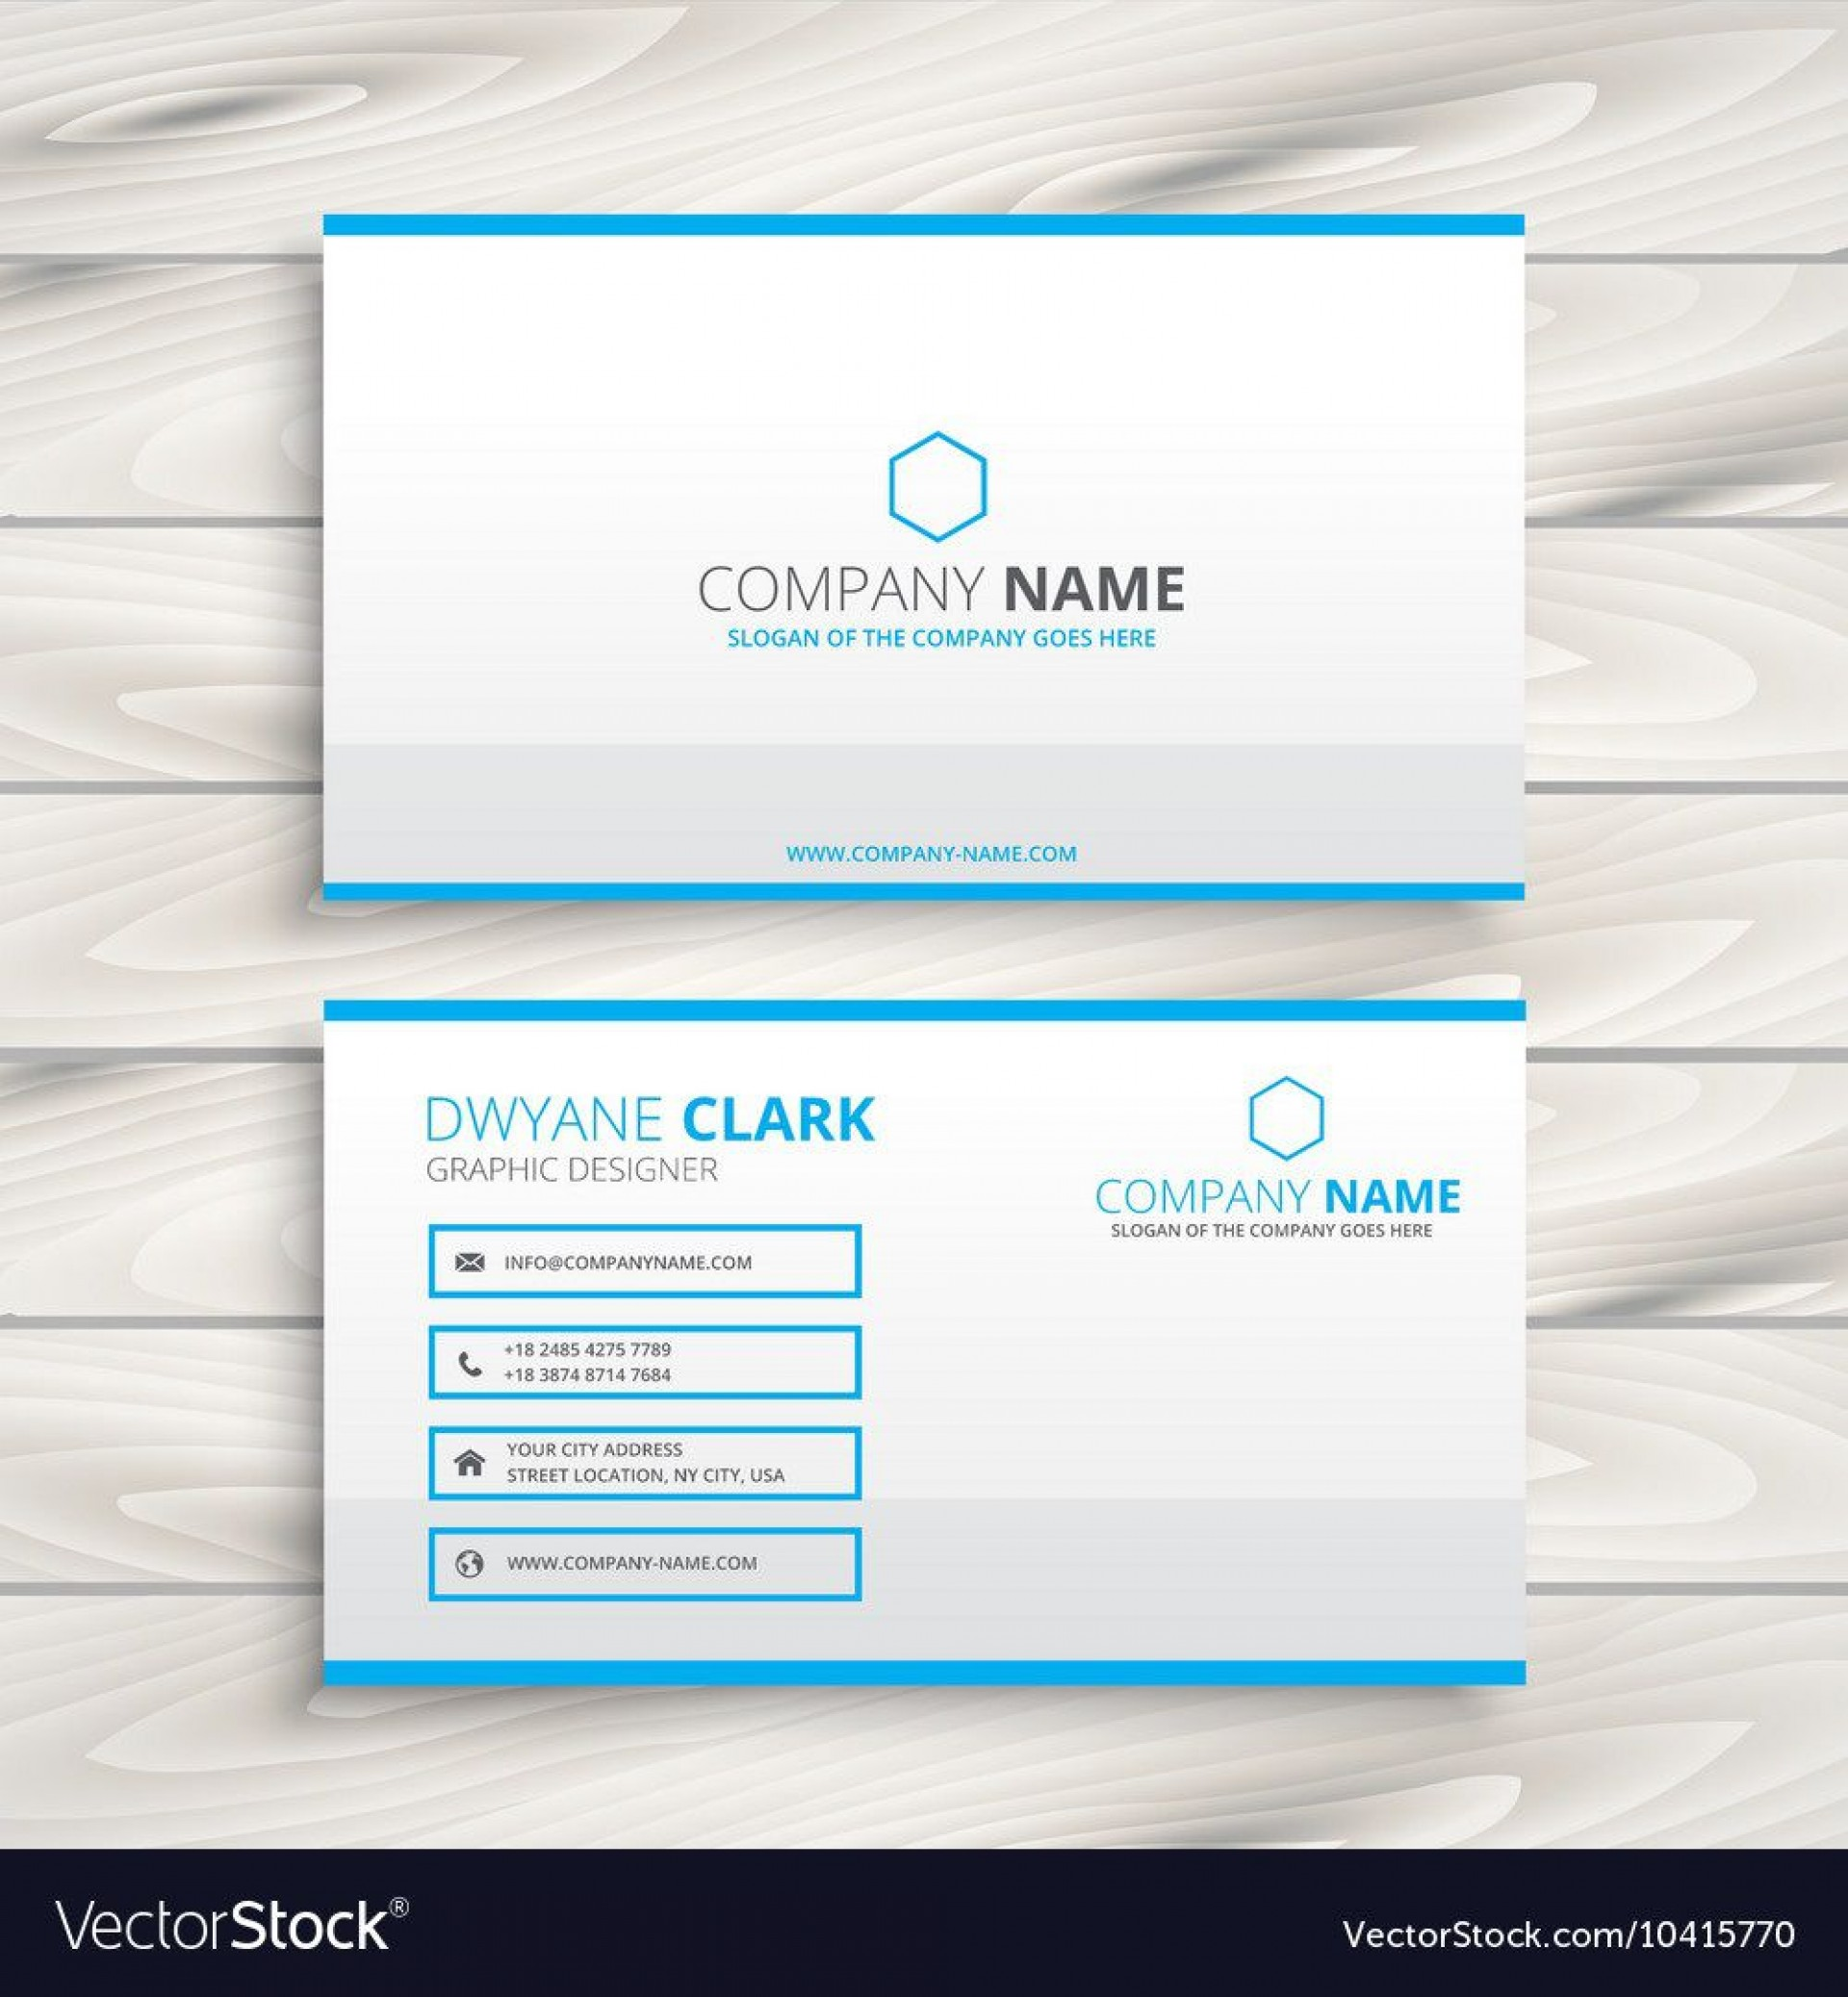 010 Awesome Minimal Busines Card Template Free Highest Clarity  Easy Simple Download1920